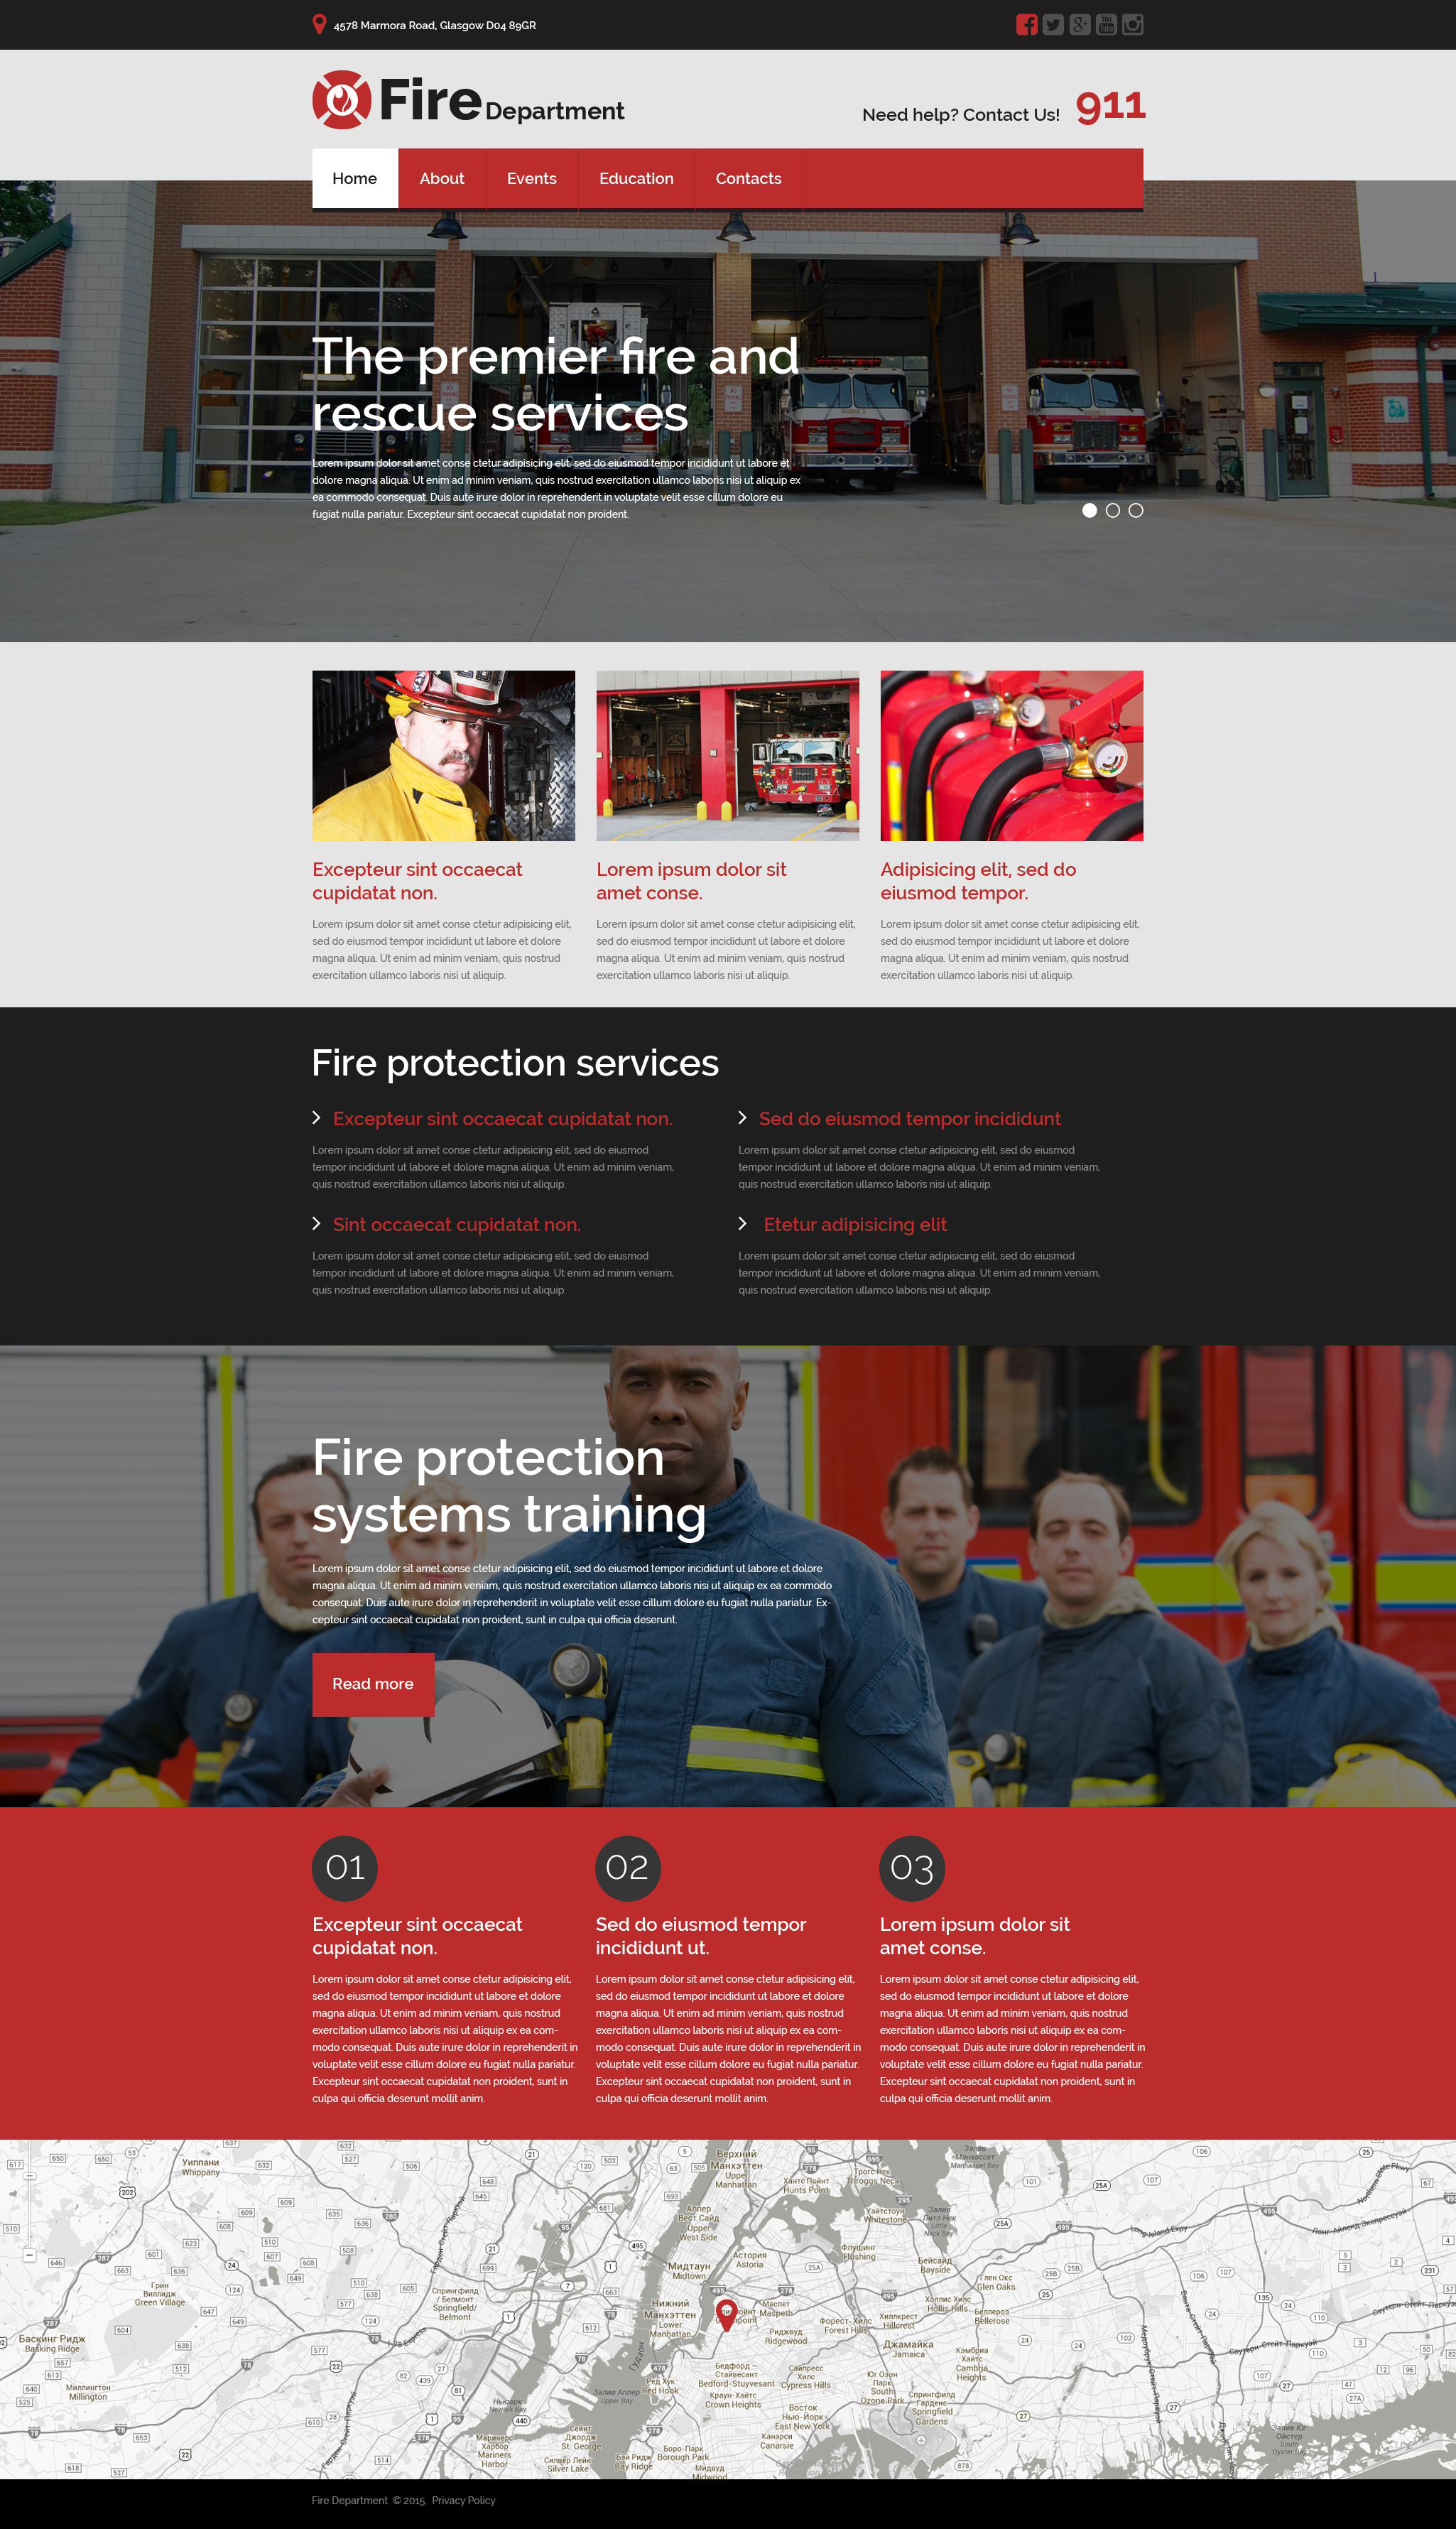 The Fire Department Bootstrap Design 53642, one of the best website templates of its kind (security, most popular), also known as fire department website template, firemen website template, helmet website template, saving website template, station website template, water website template, training website template, courses website template, conflagration website template, alarm website template, firehouse website template, smoke website template, posture website template, sensor website template, nozzle website template, tag website template, foam and related with fire department, firemen, helmet, saving, station, water, training, courses, conflagration, alarm, firehouse, smoke, posture, sensor, nozzle, tag, foam, etc.